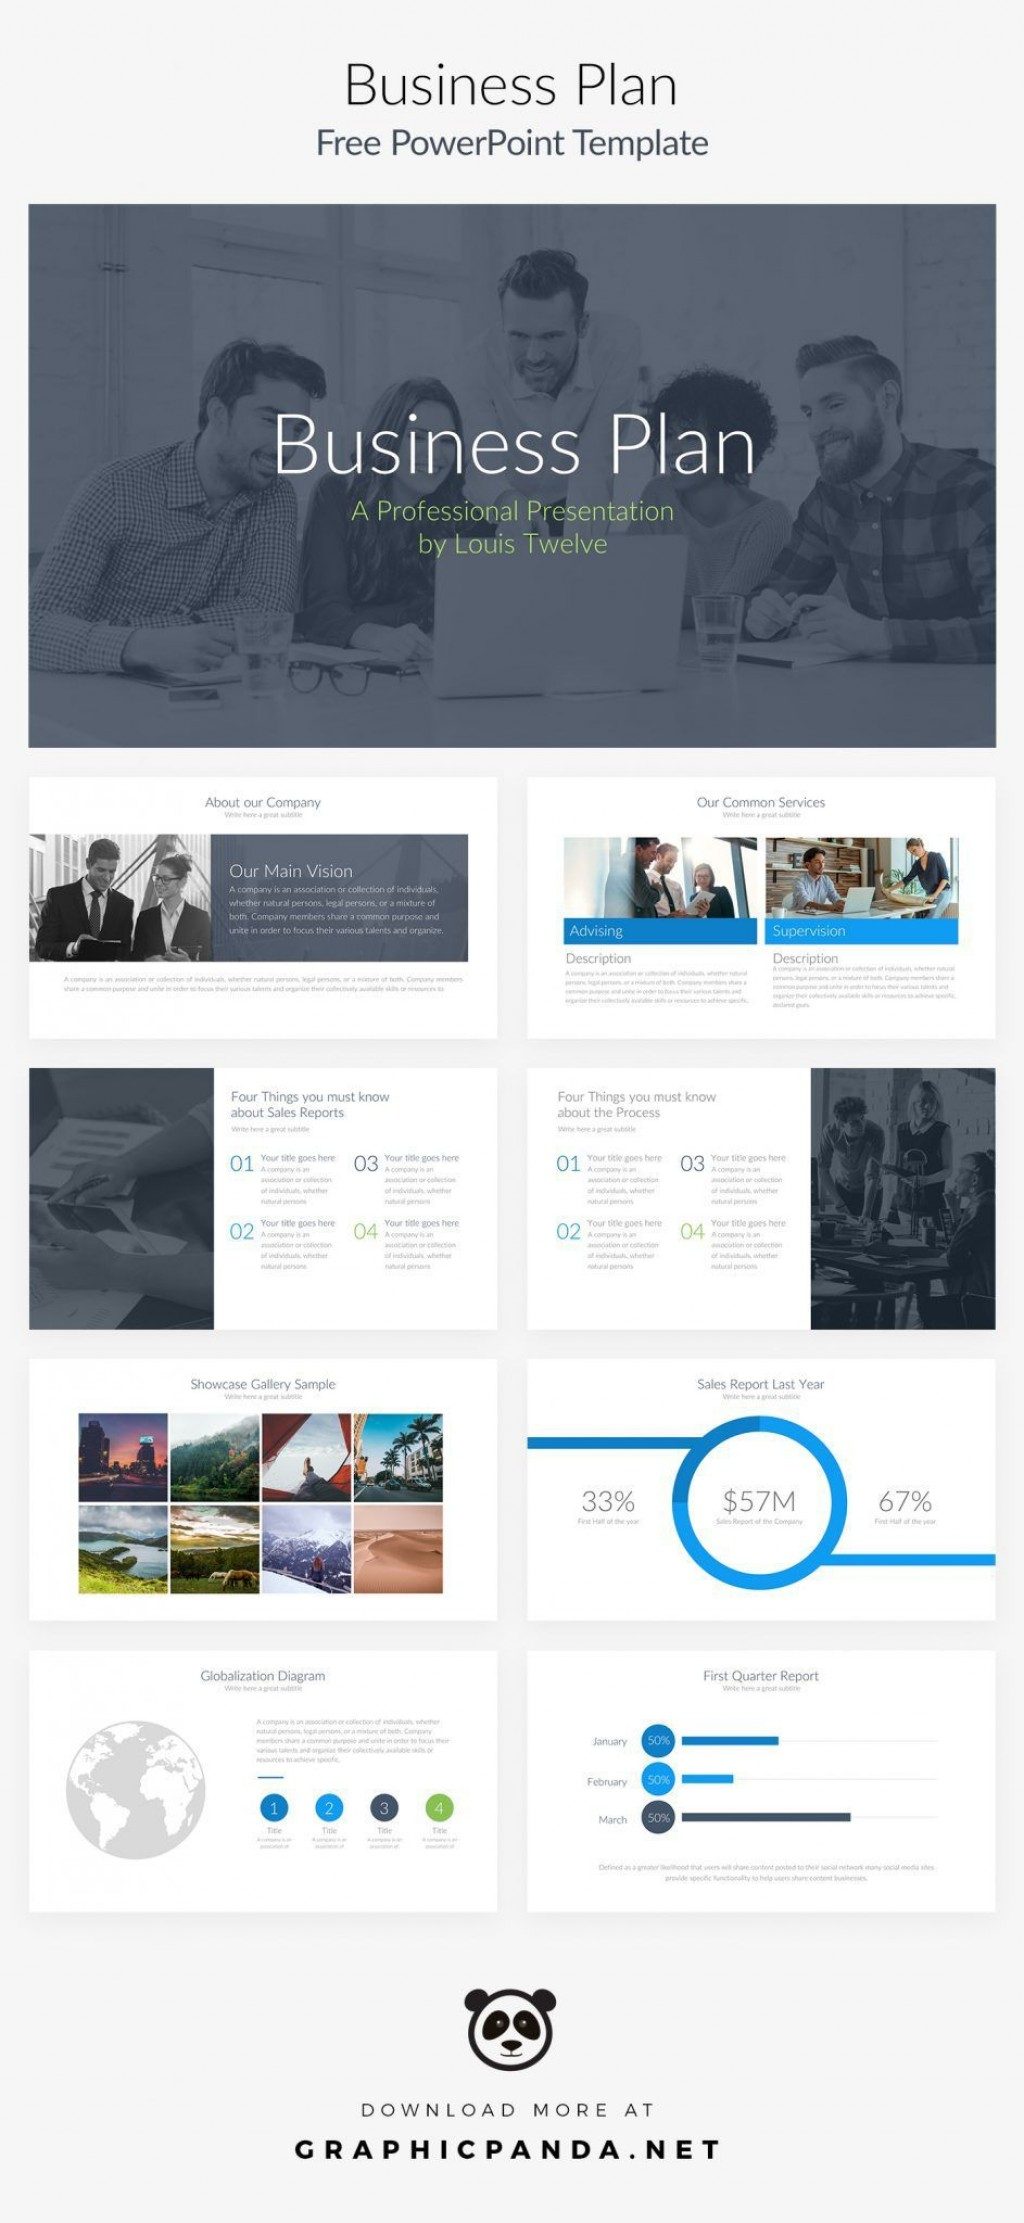 005 Exceptional Free Busines Proposal Template Powerpoint Idea  Best Plan Ppt 2020 SaleLarge